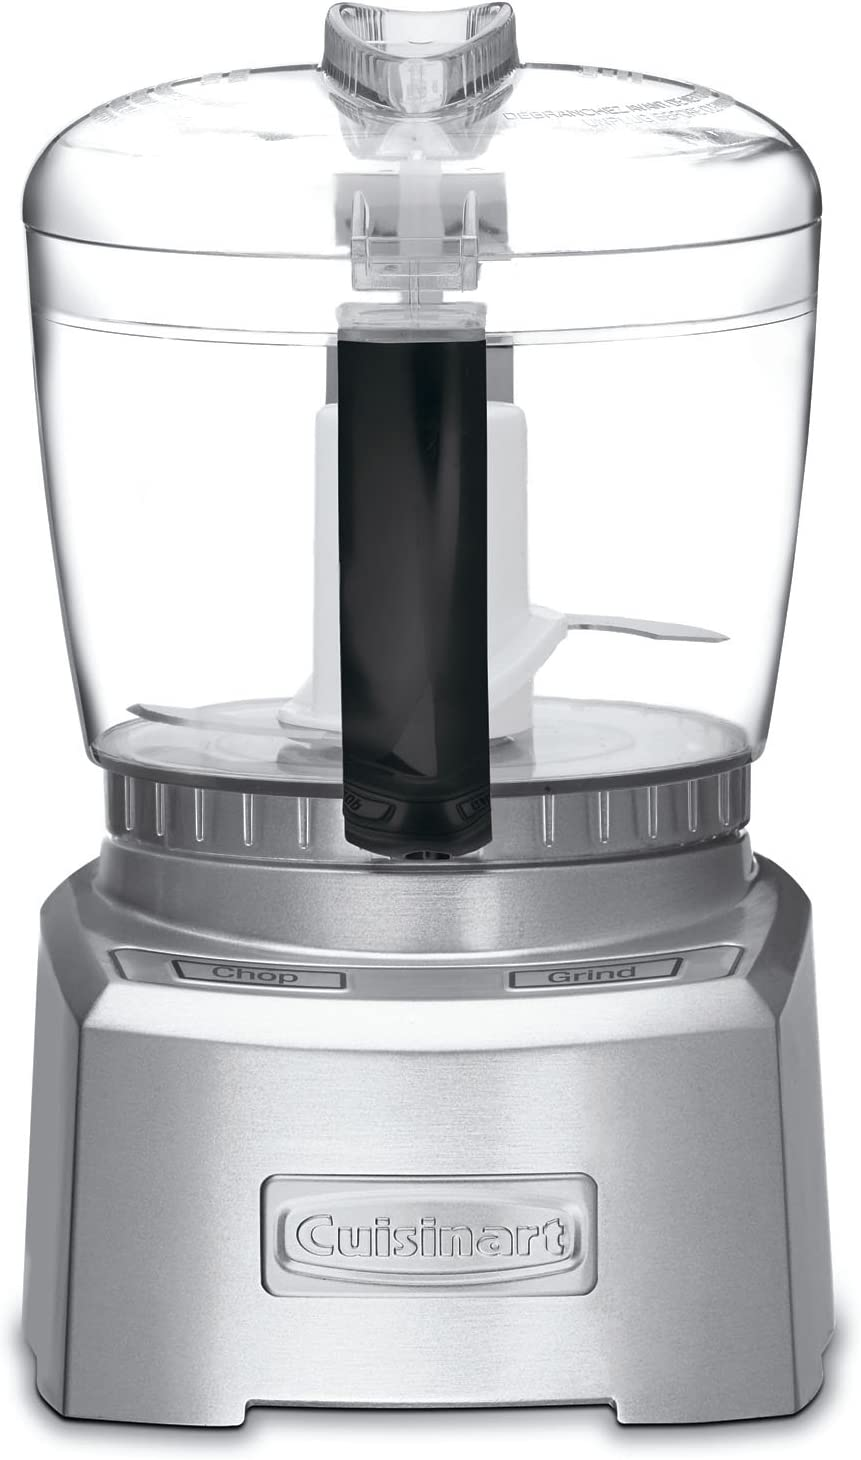 Cuisinart 4 Cup Sifter New